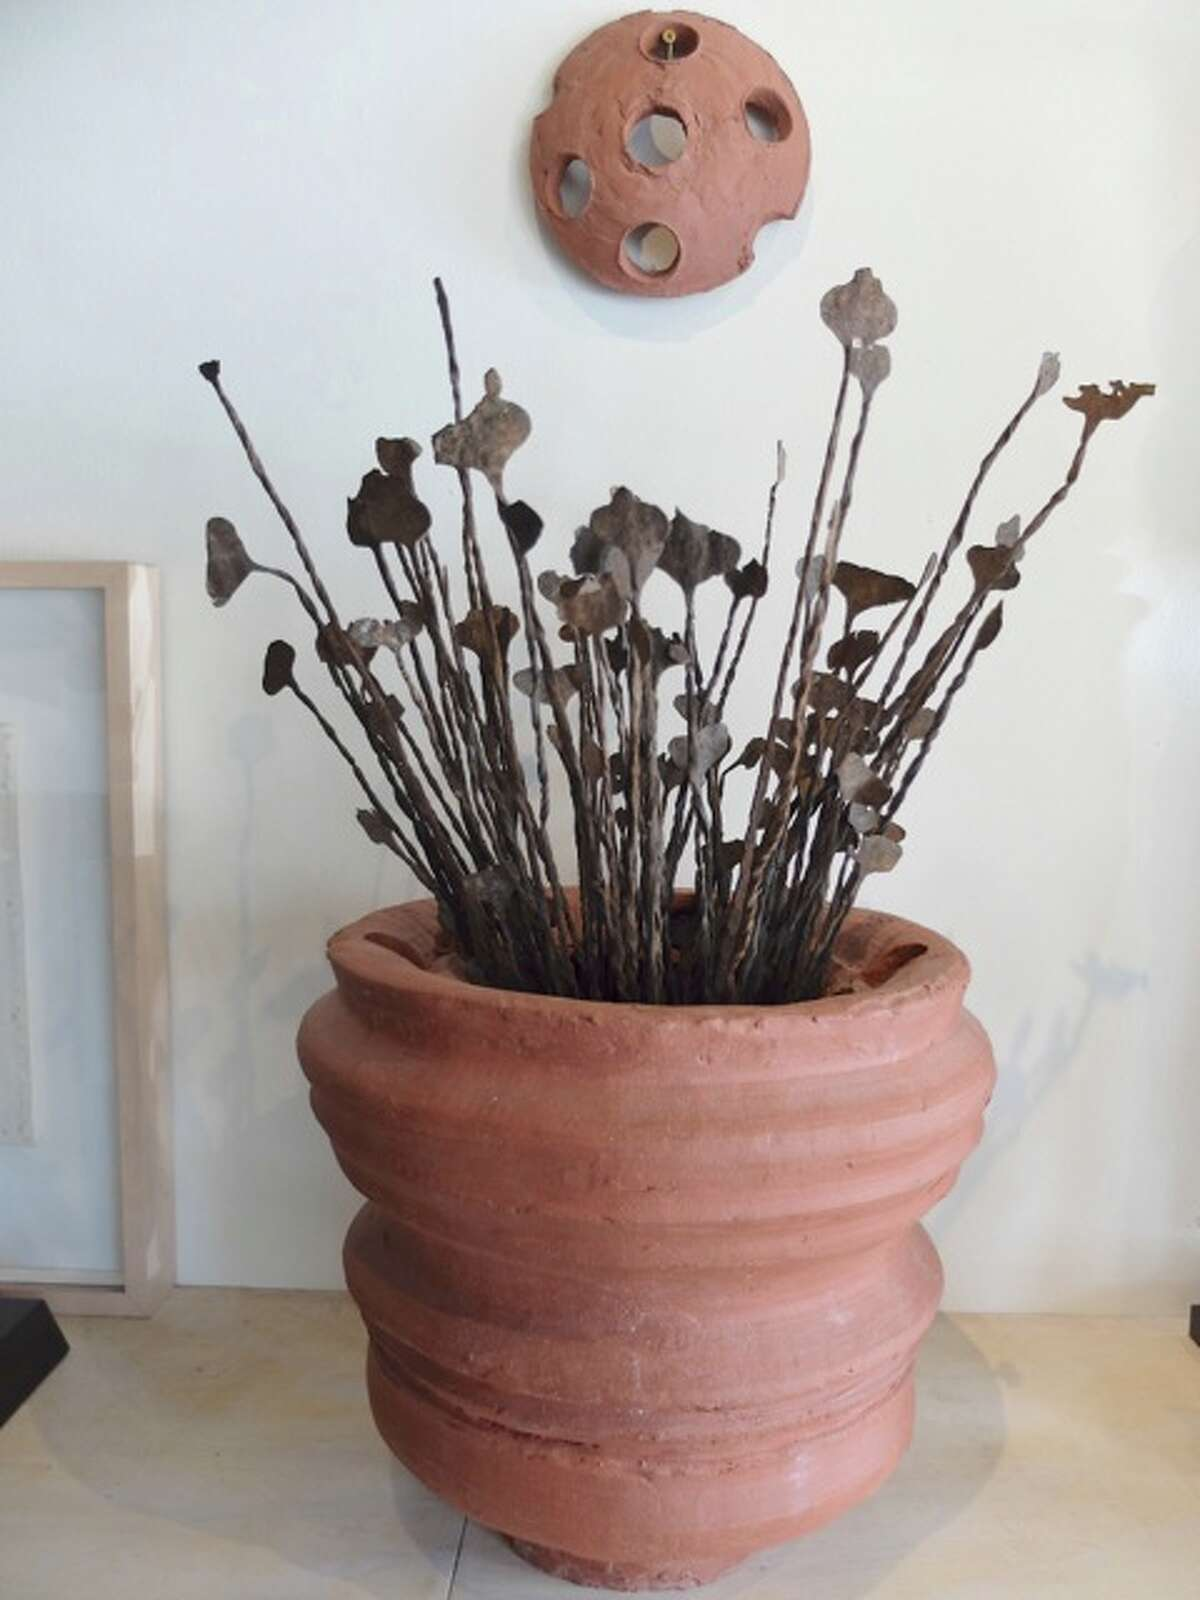 """A pot by Patrick Renner is among works on view in """"Cabinet of Curiosities"""" at Gallery Jatad through April 25."""